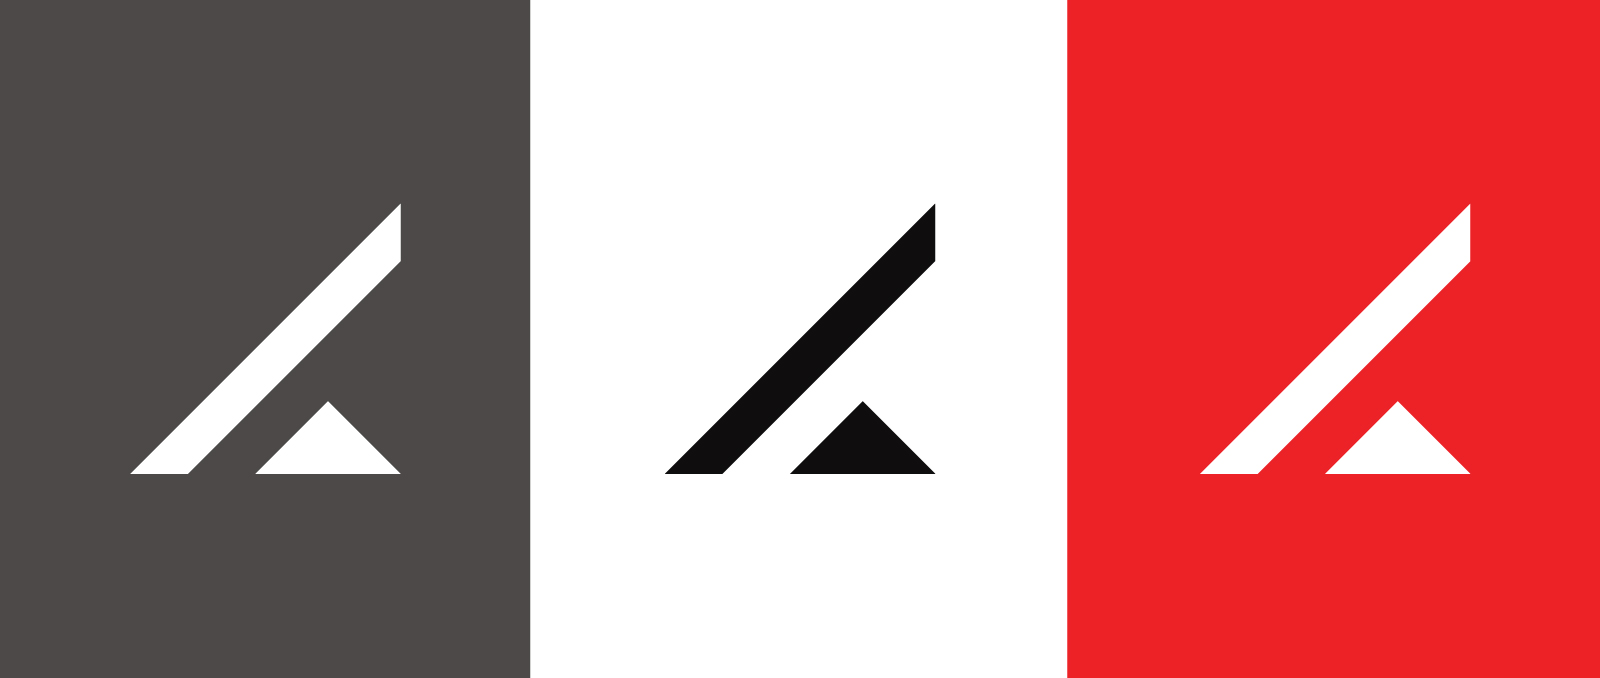 Lever Gear leverage mark with triangle and line shown in a variety of color-ways including white logo on gray, red background